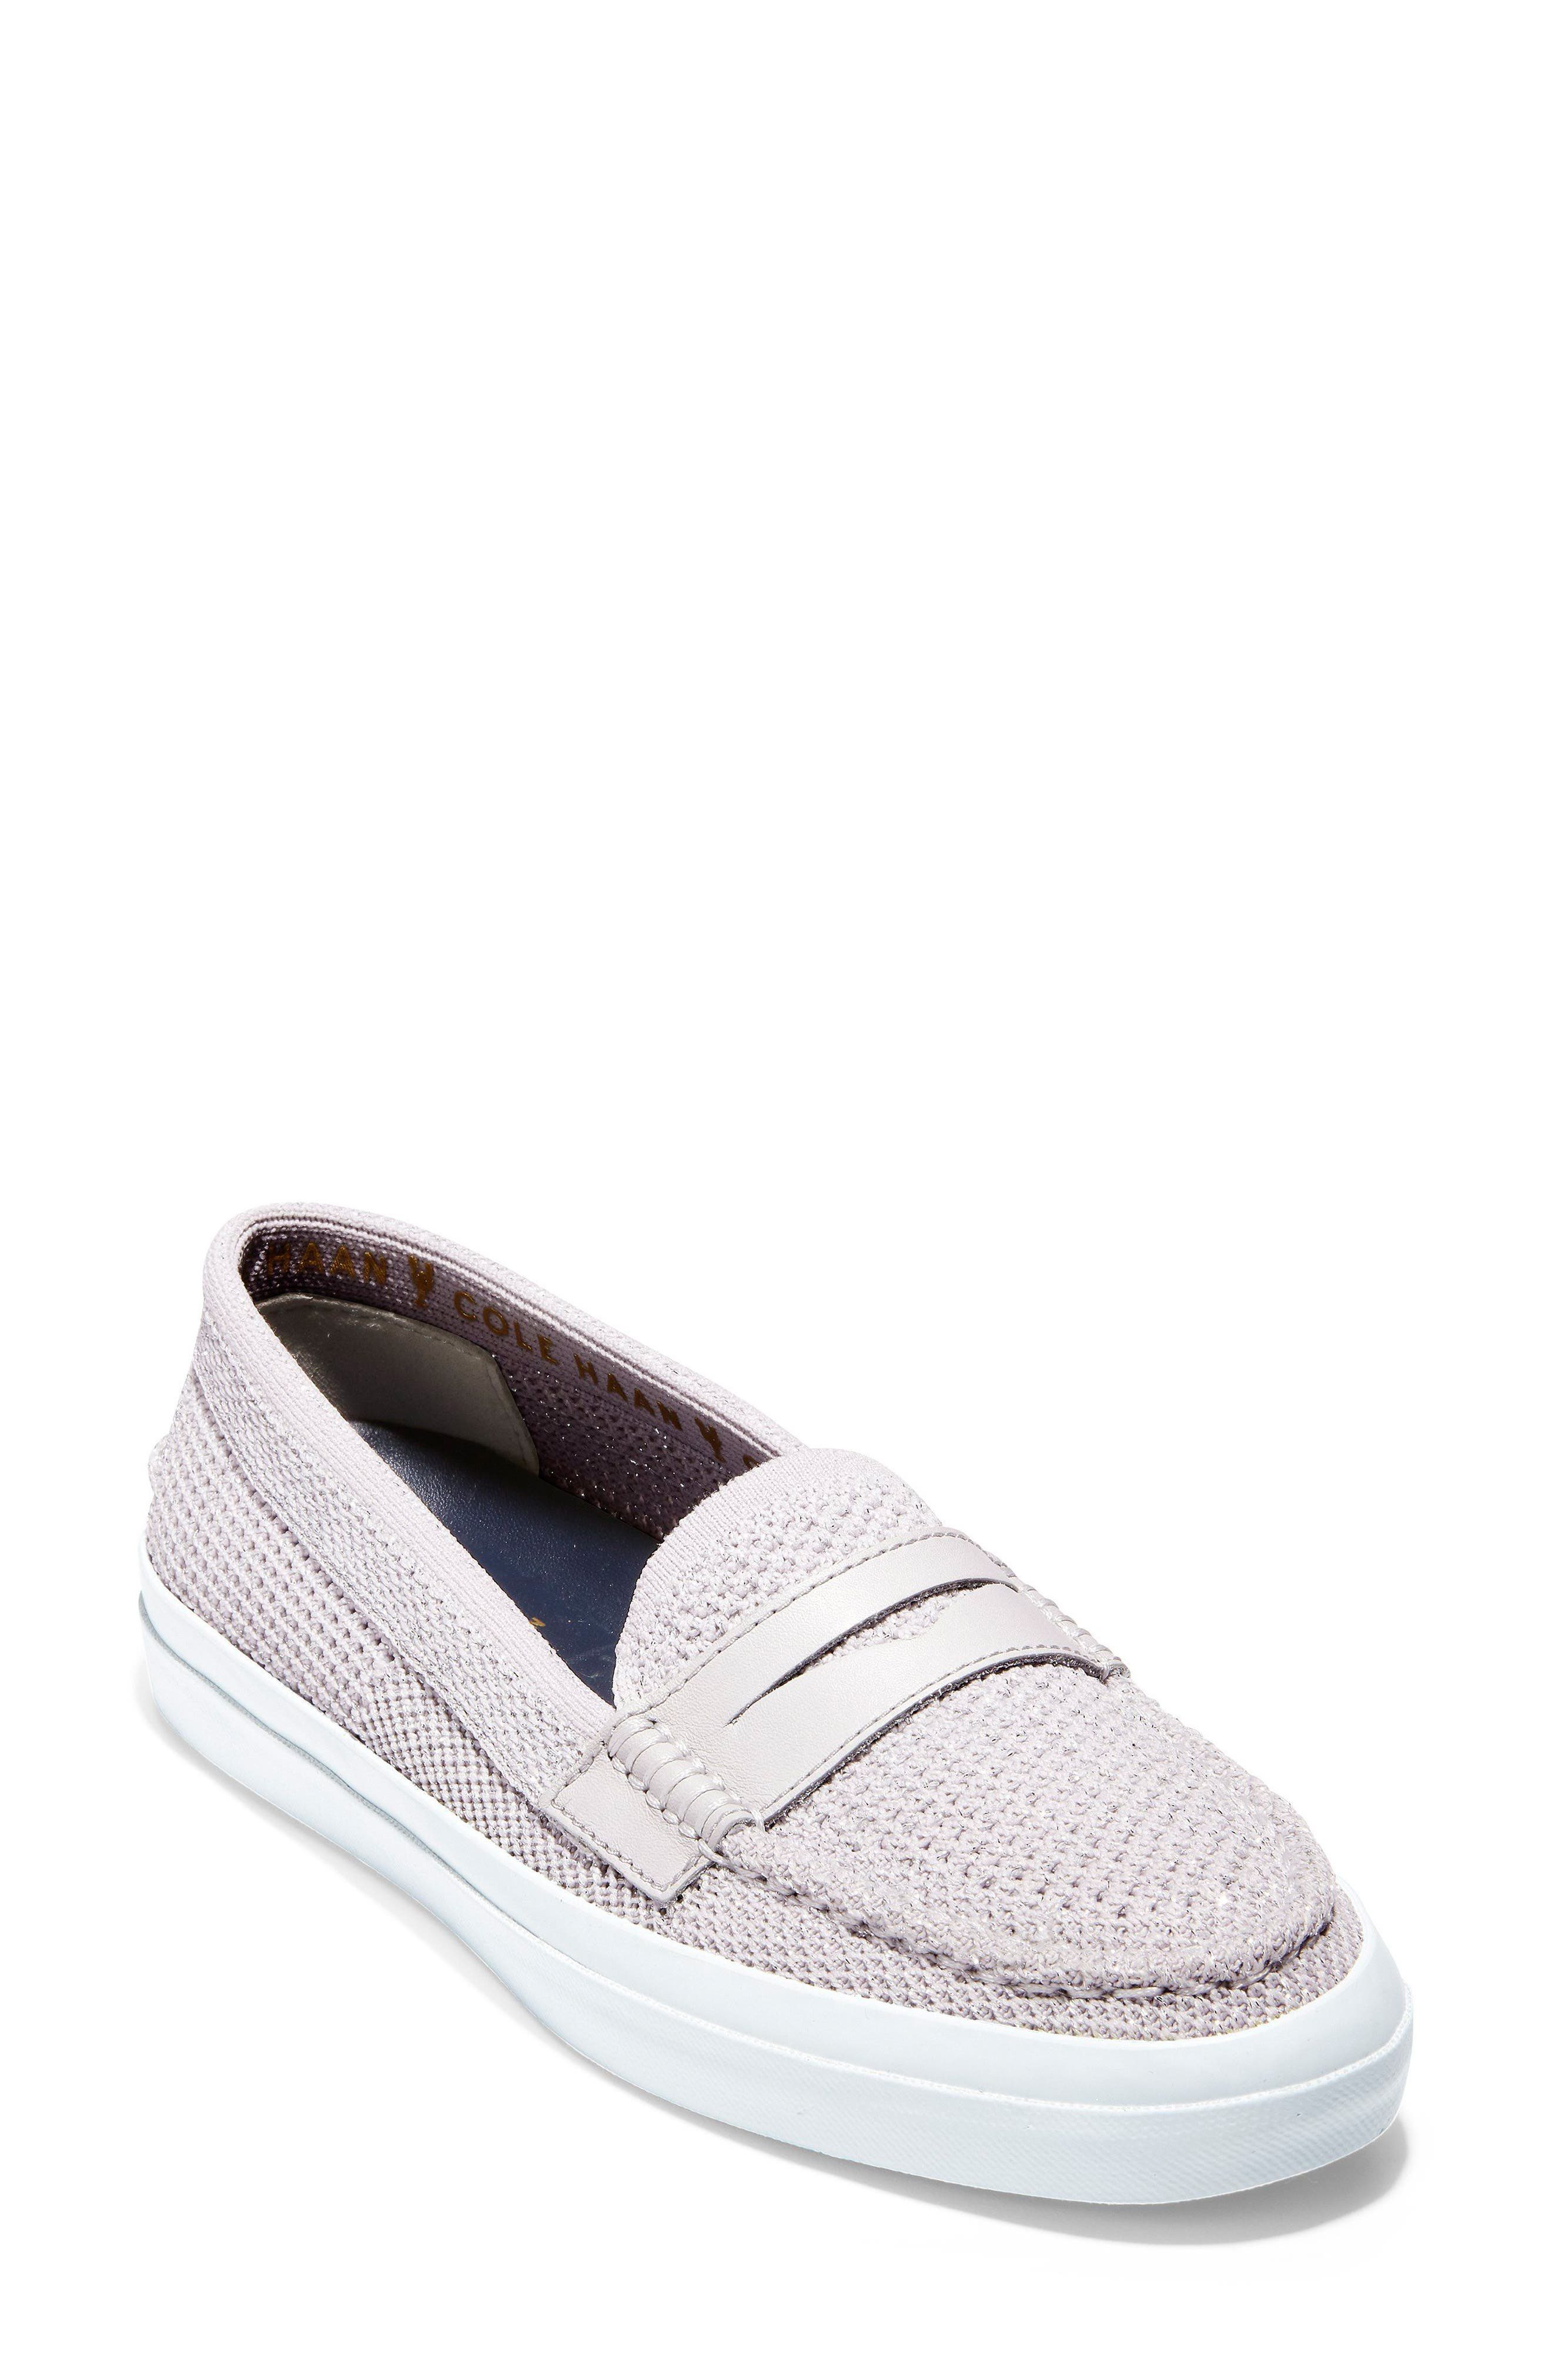 Pinch Stitchlite<sup>™</sup> Loafer,                         Main,                         color, SILVER/ WHITE LEATHER